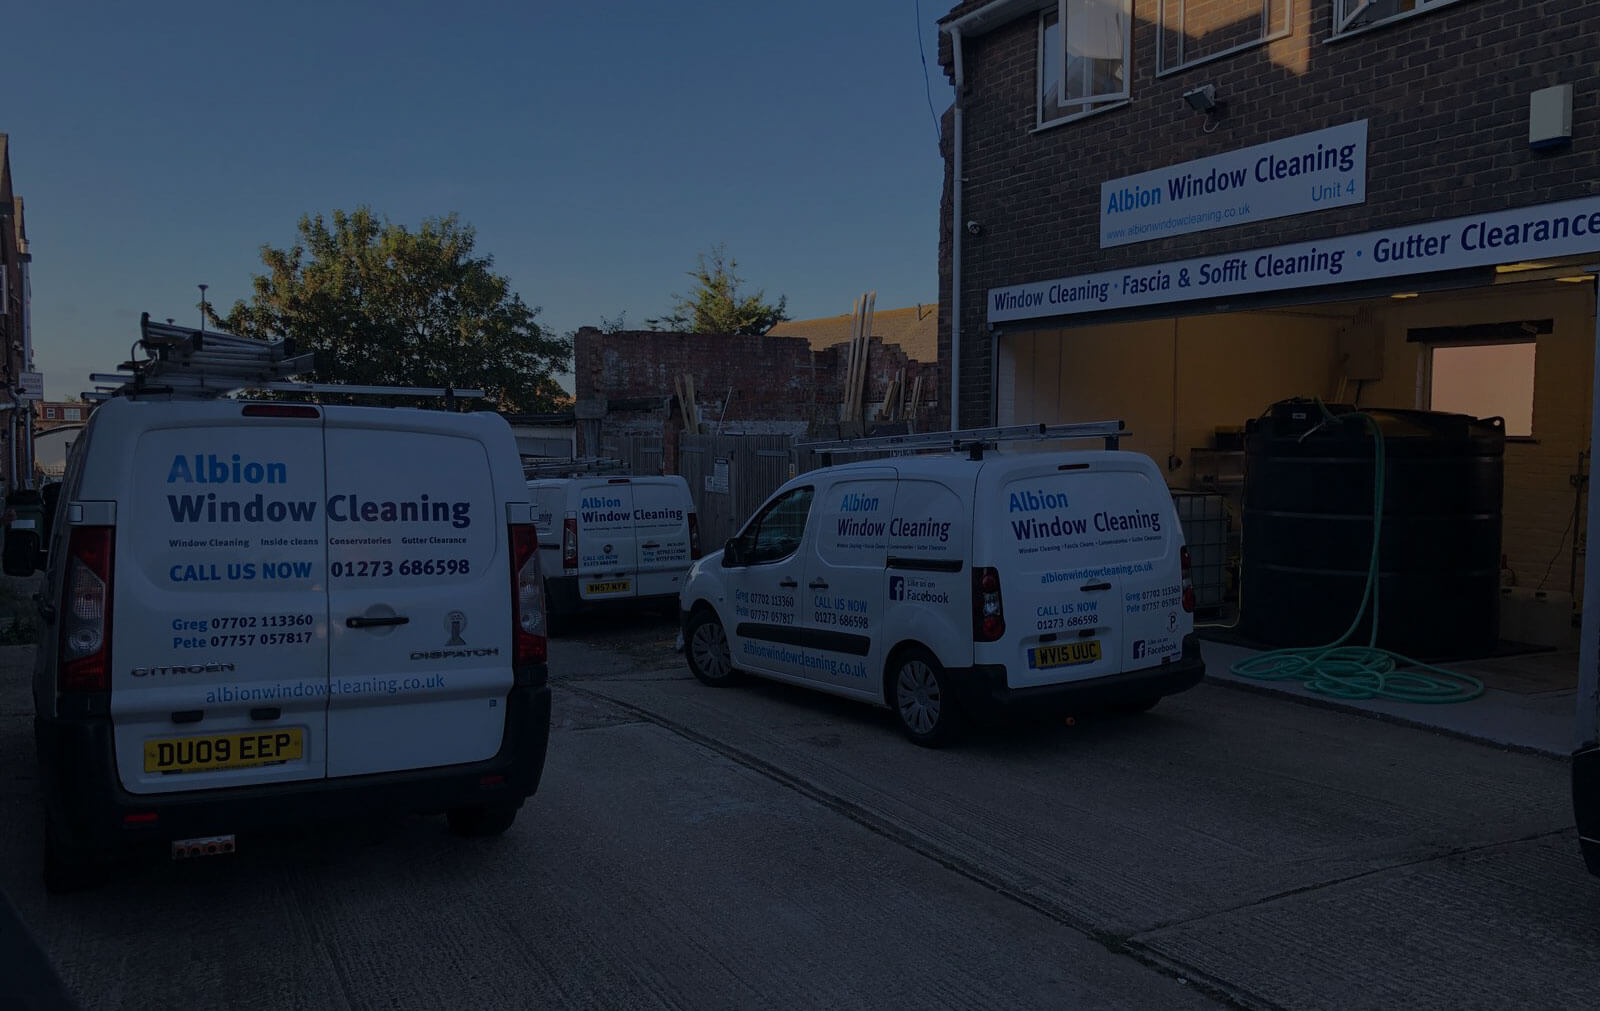 Albion Window Cleaning vans and property